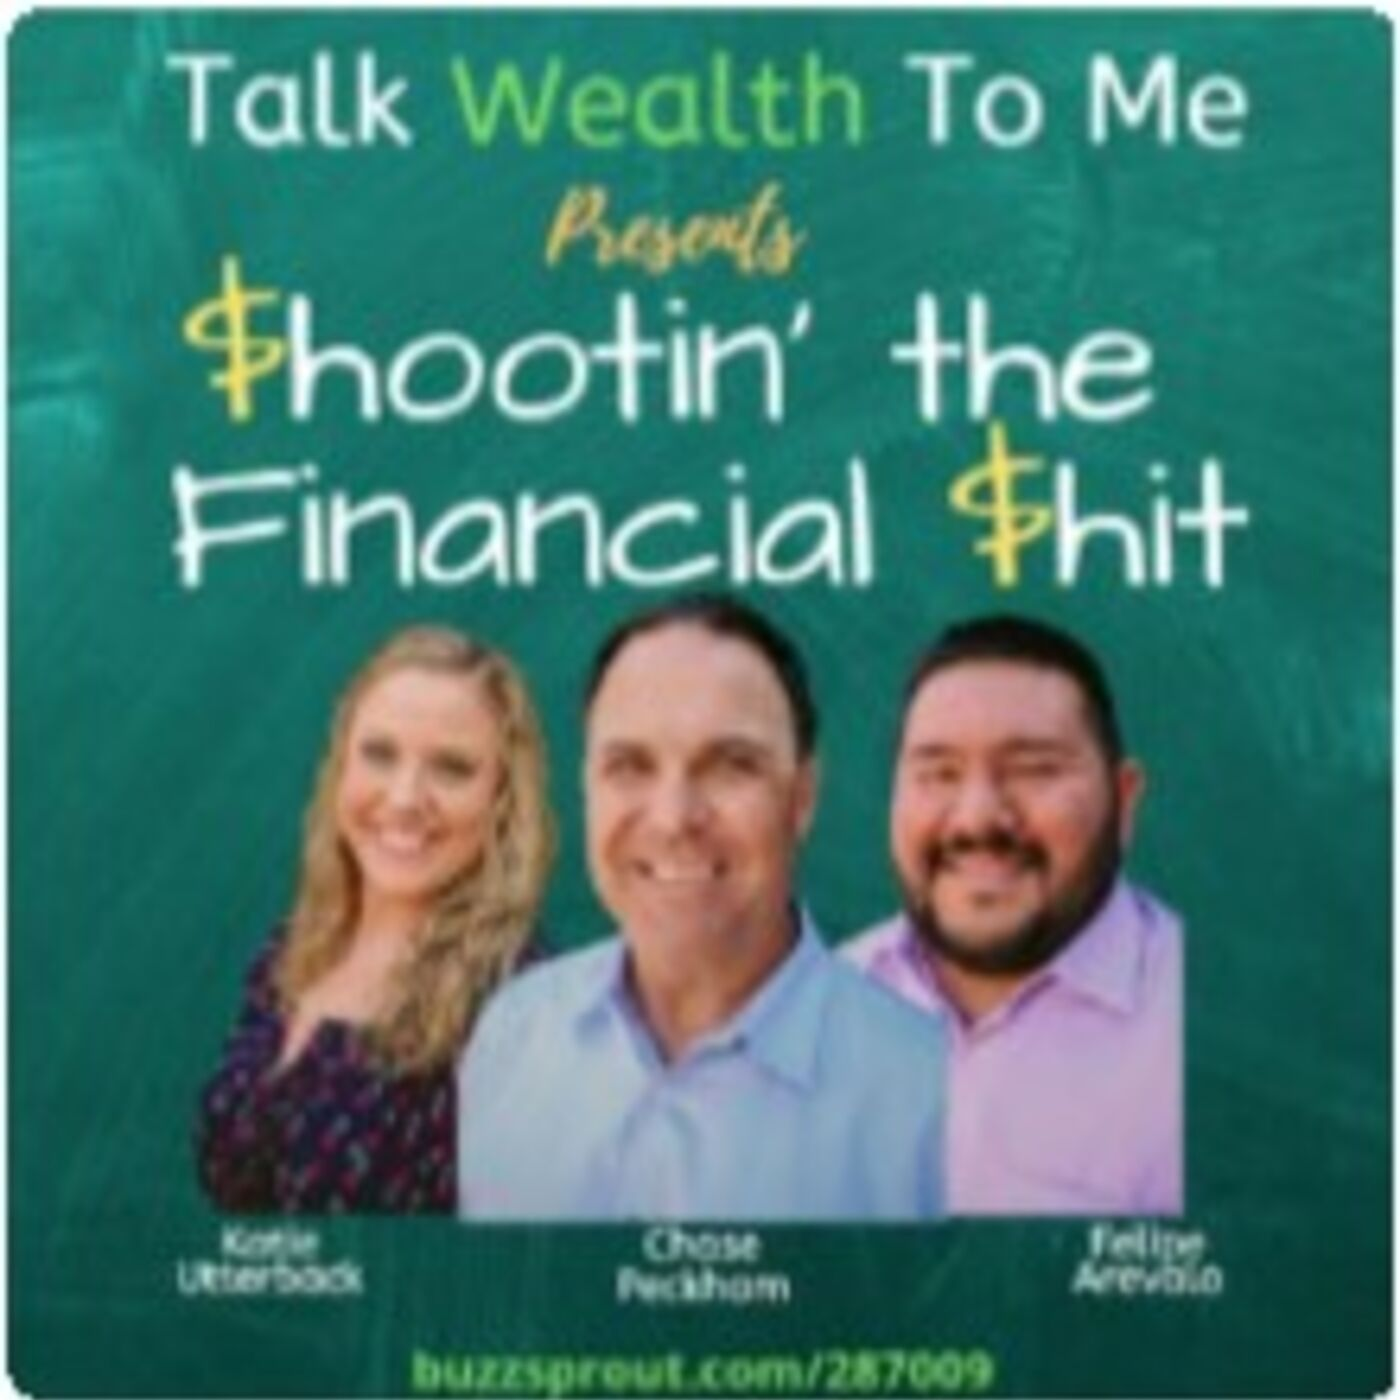 #090 Shootin the Financial $h!t- Can I spend $ on myself when I am in Debt?